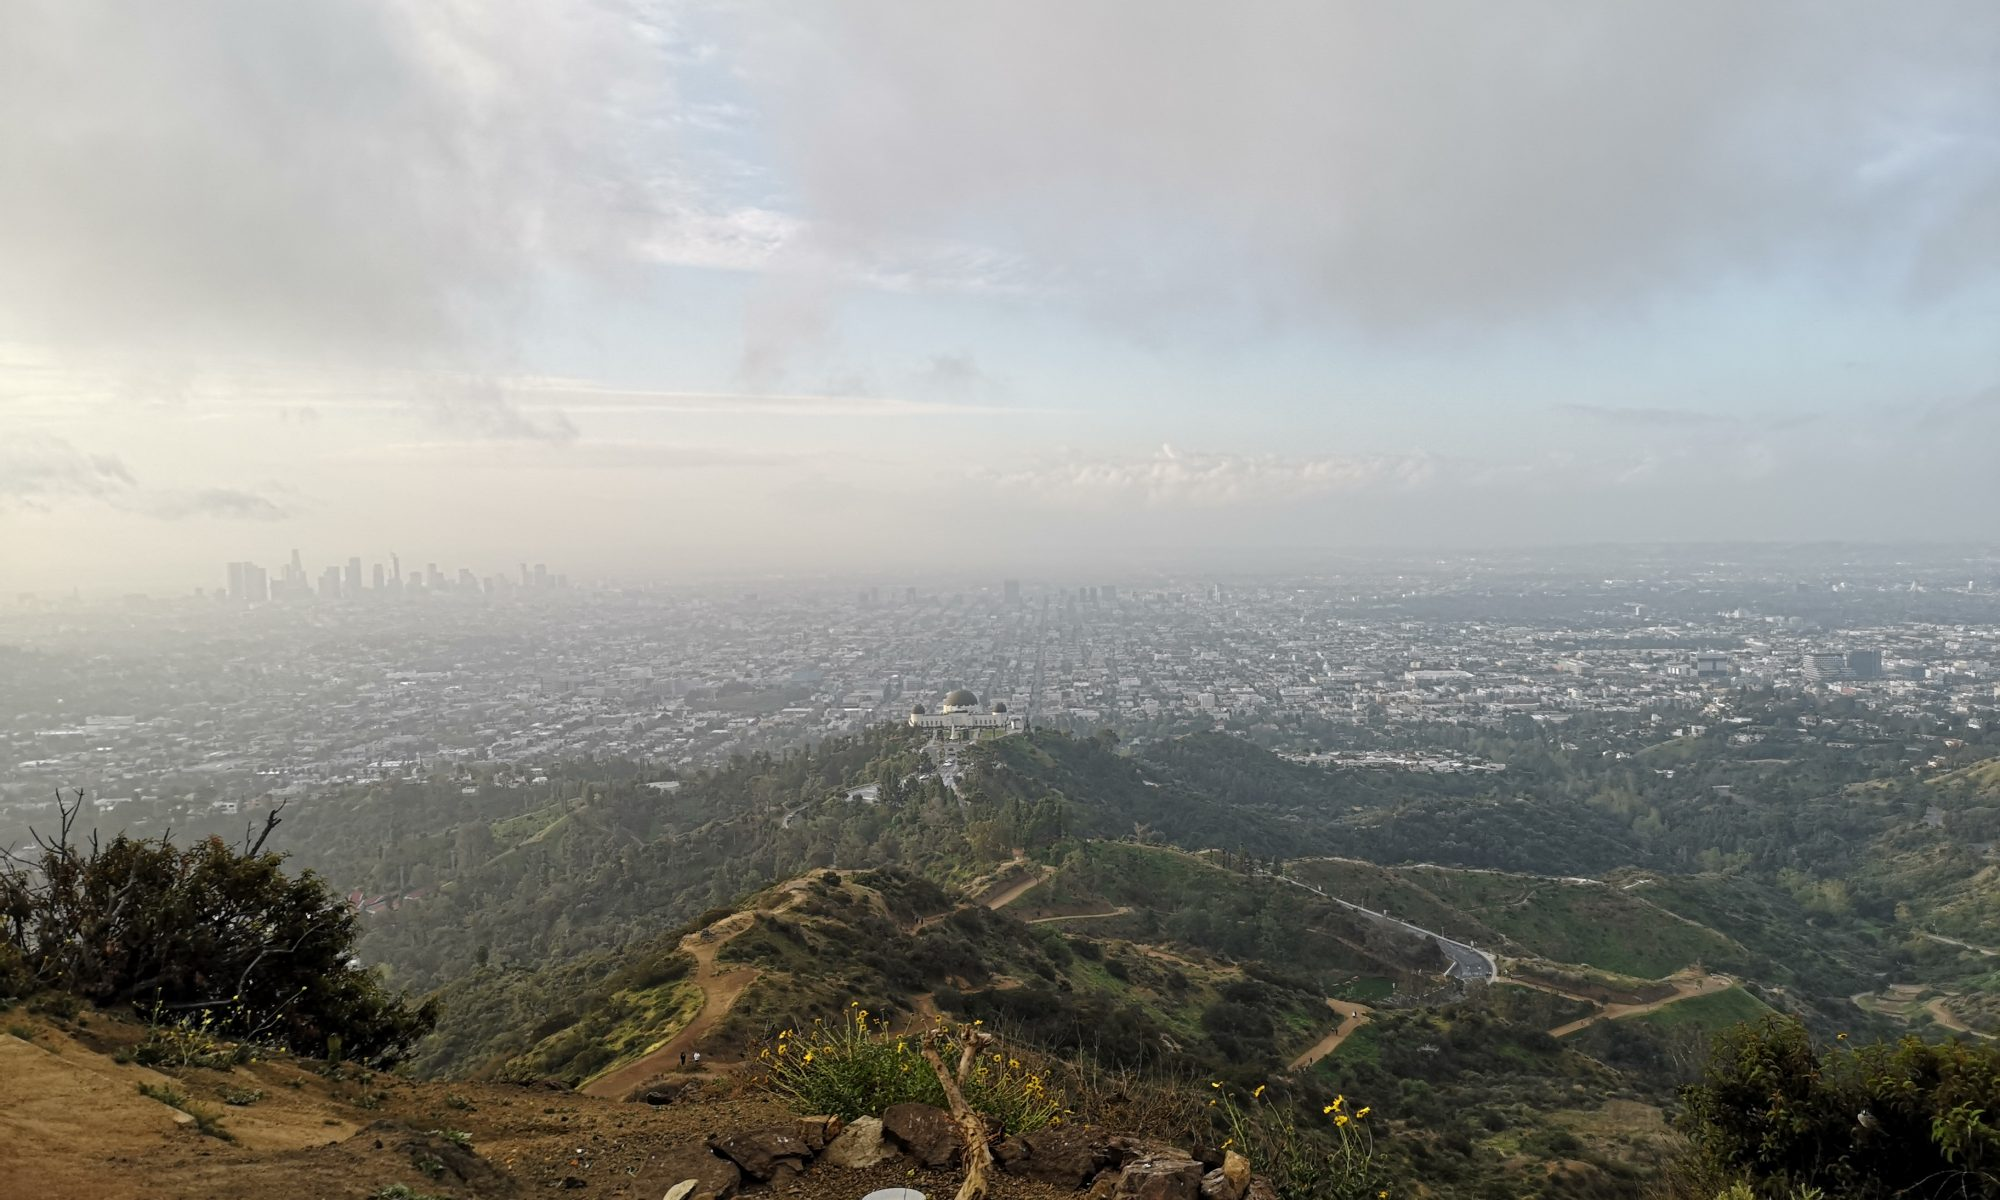 View on Los Angeles from the Griffith Park